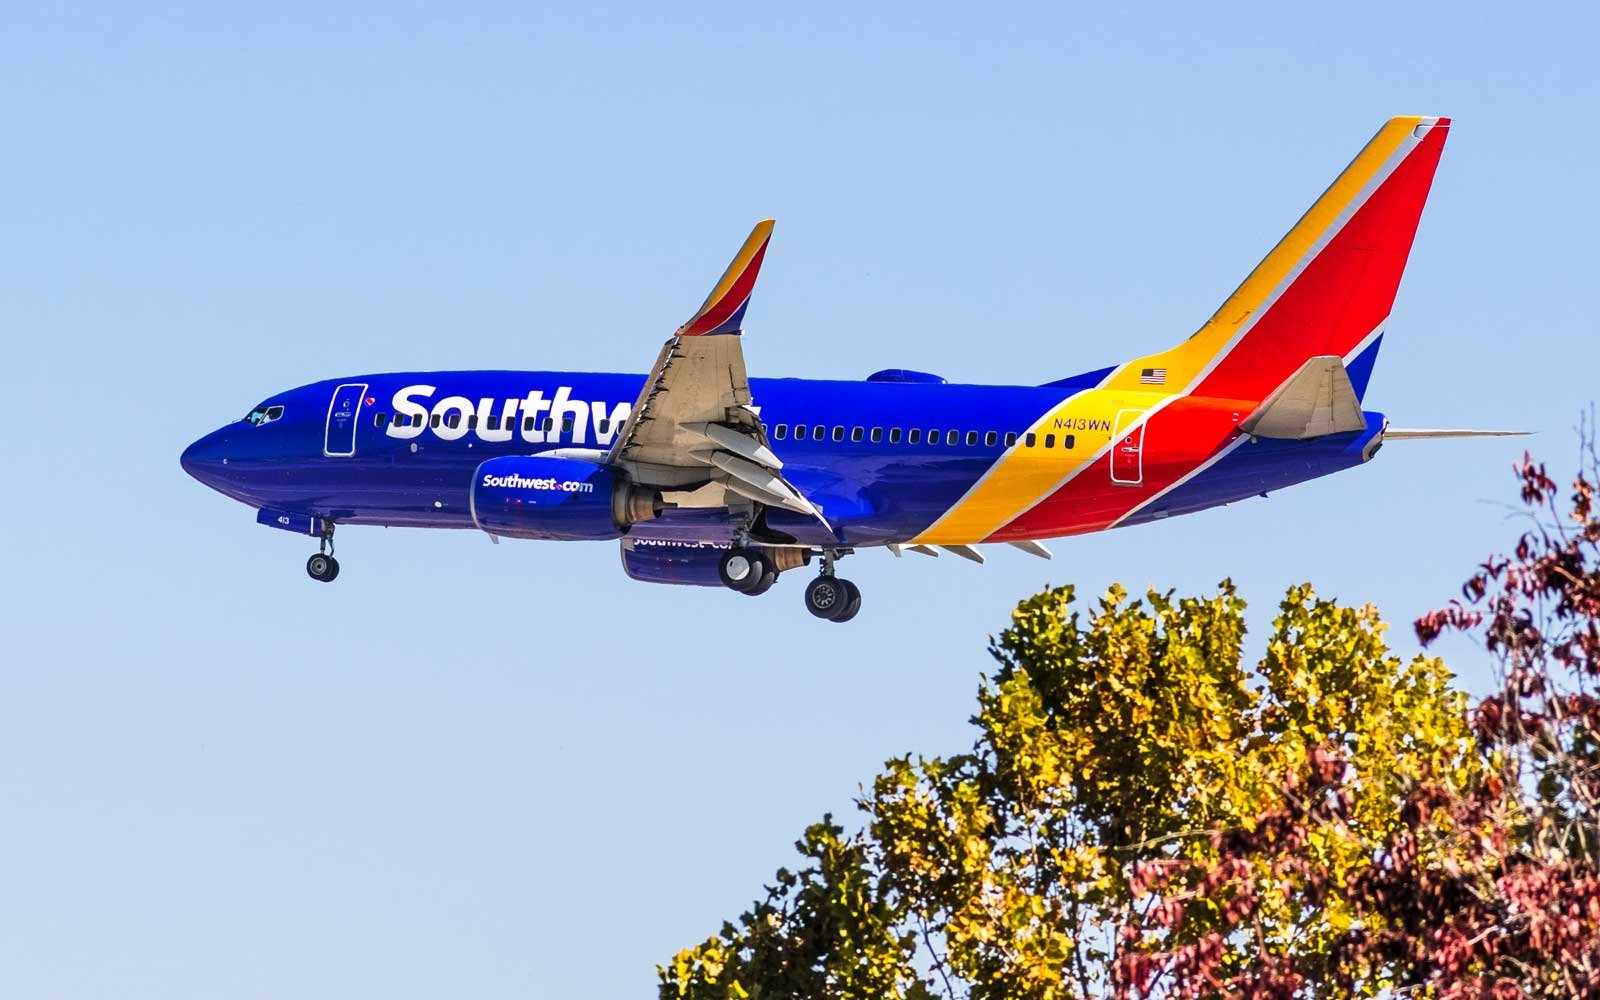 Southwest's companion pass is one of the best deals in travel — now it's harder to score